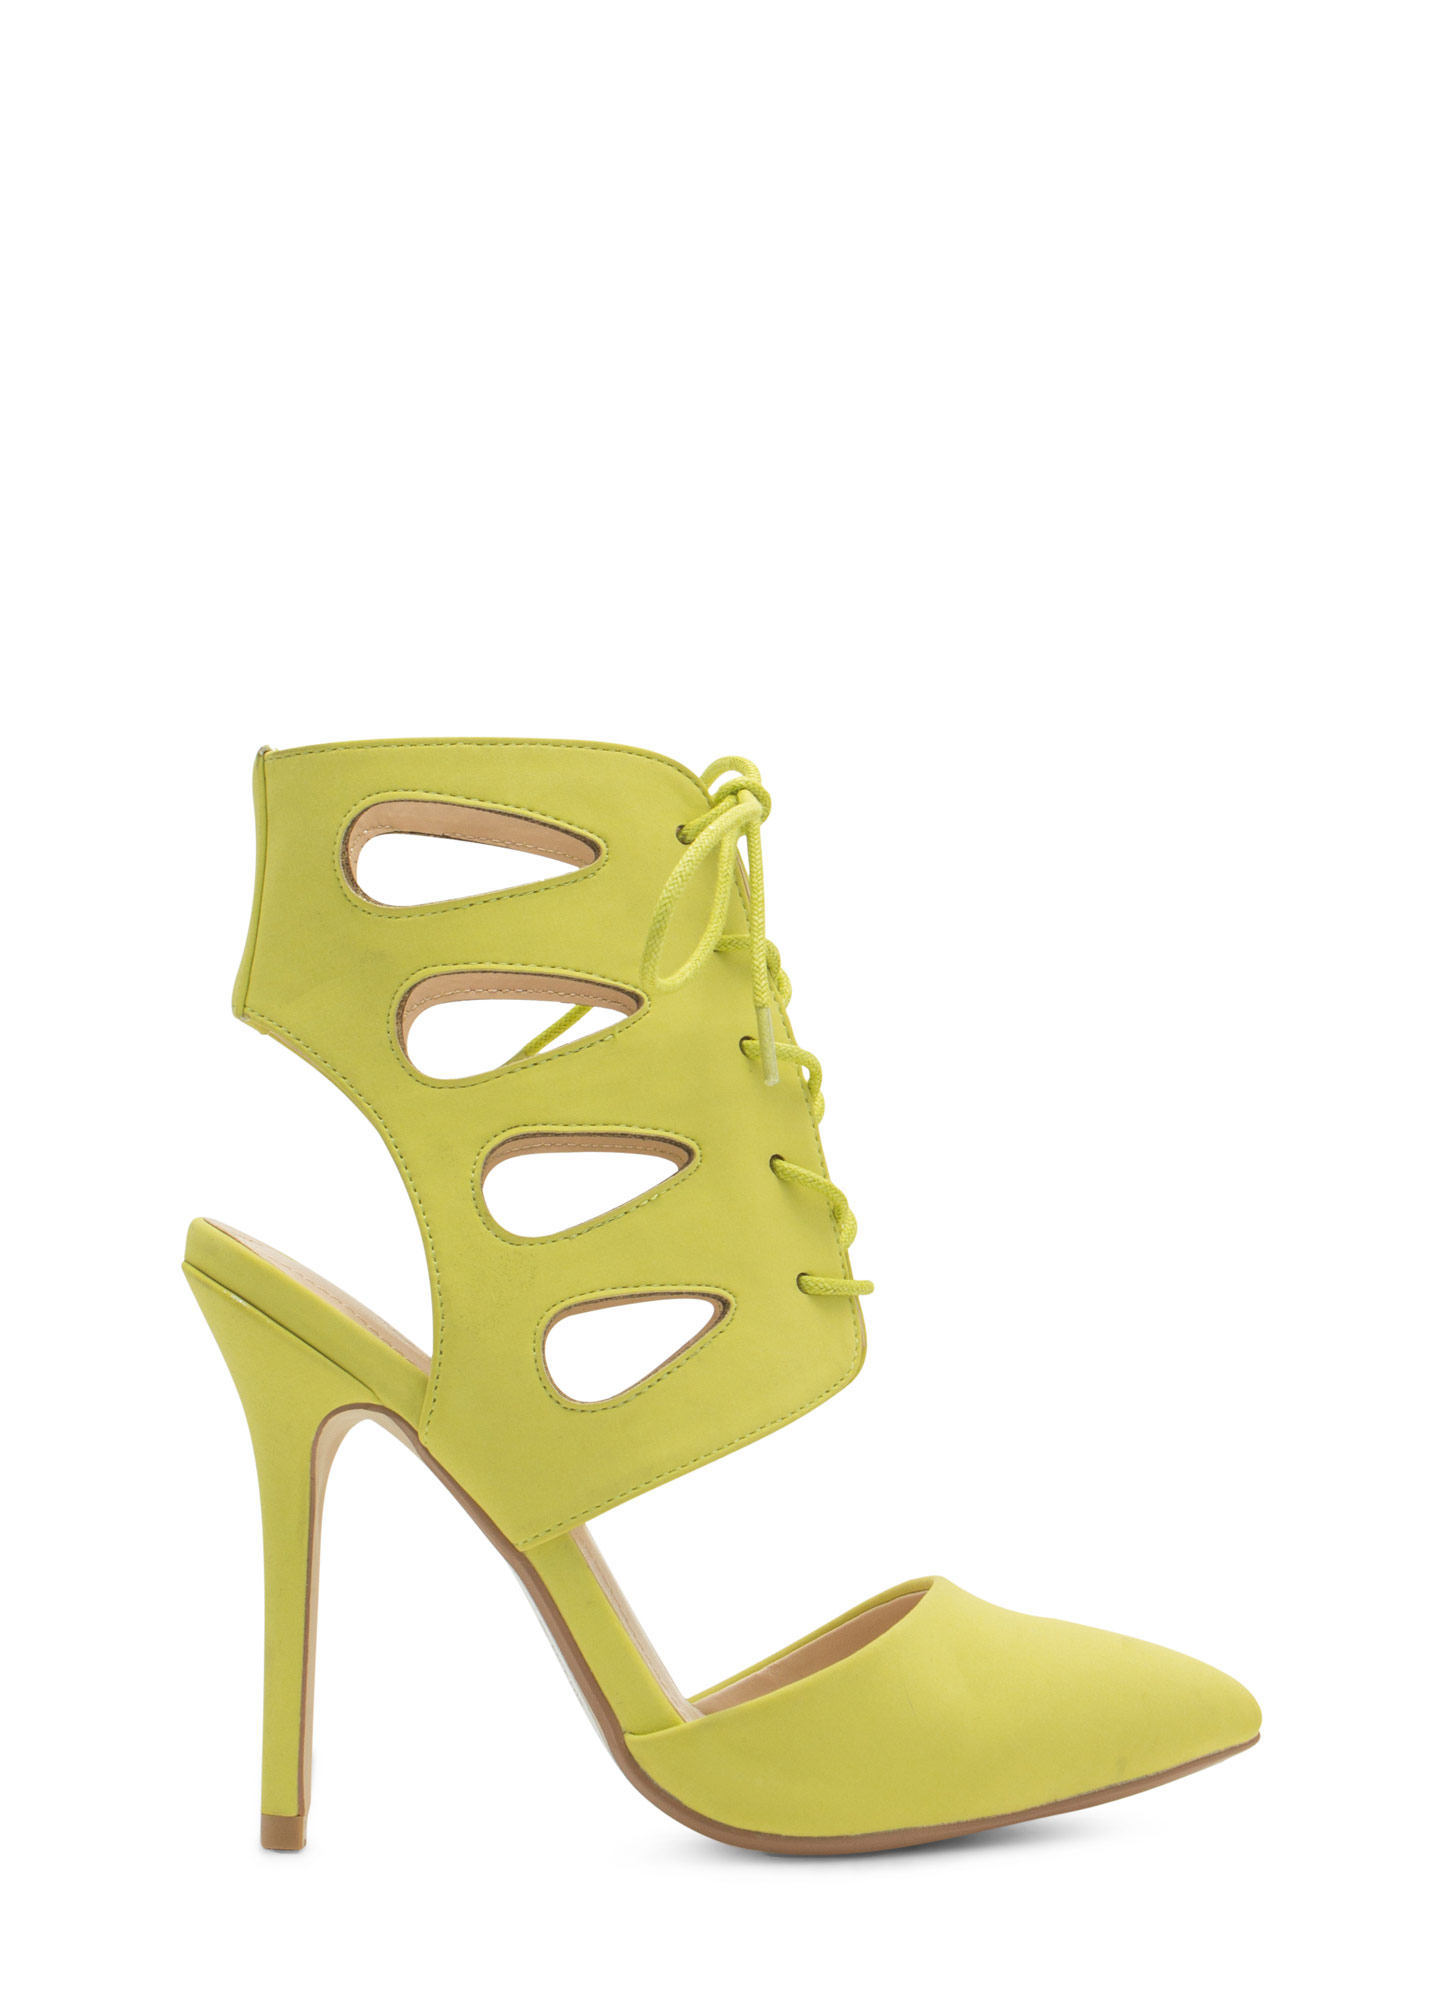 Teardrop Cut-Out Lace-Up Heels LIME